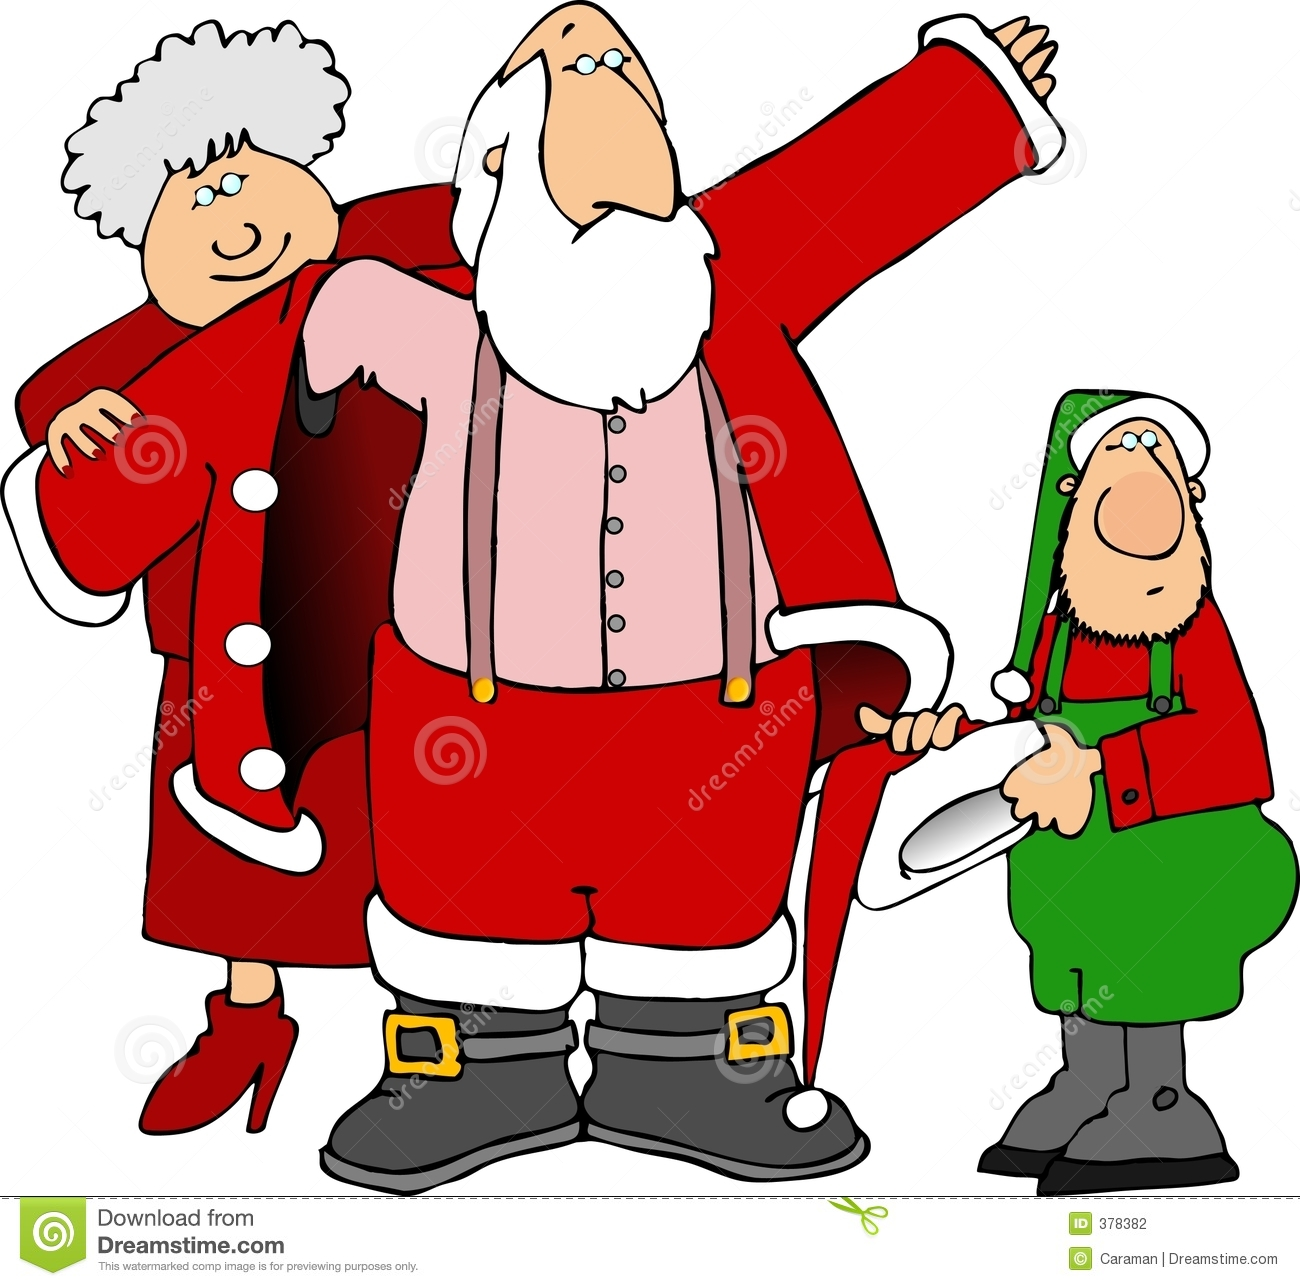 Illustration depicts mrs claus and an elf helping santa get dressed